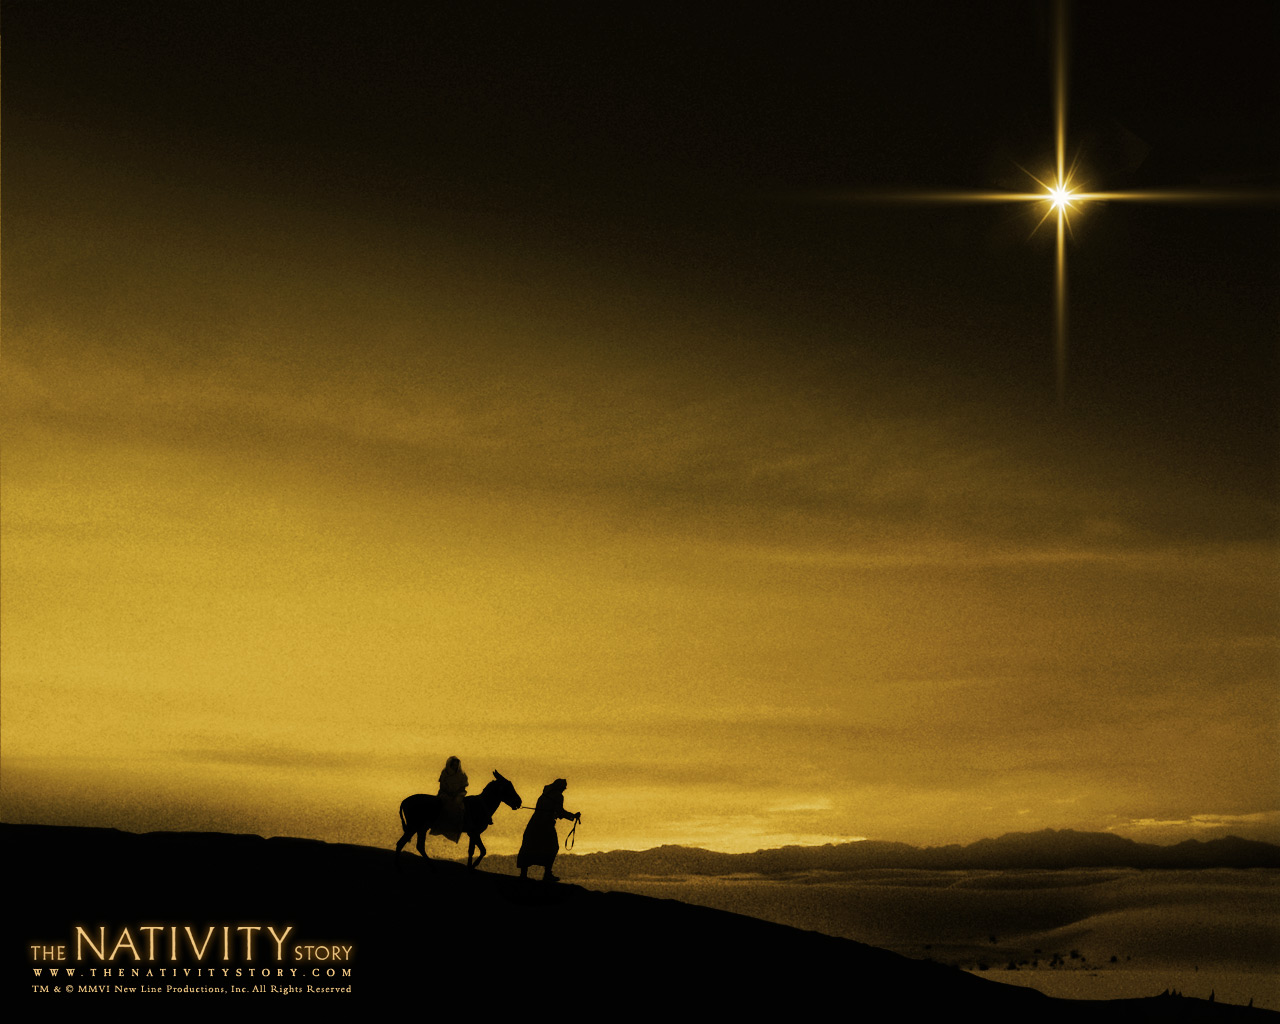 Story 2006 Movie Wallpaper The Nativity Story 耶稣诞生 电影壁纸壁